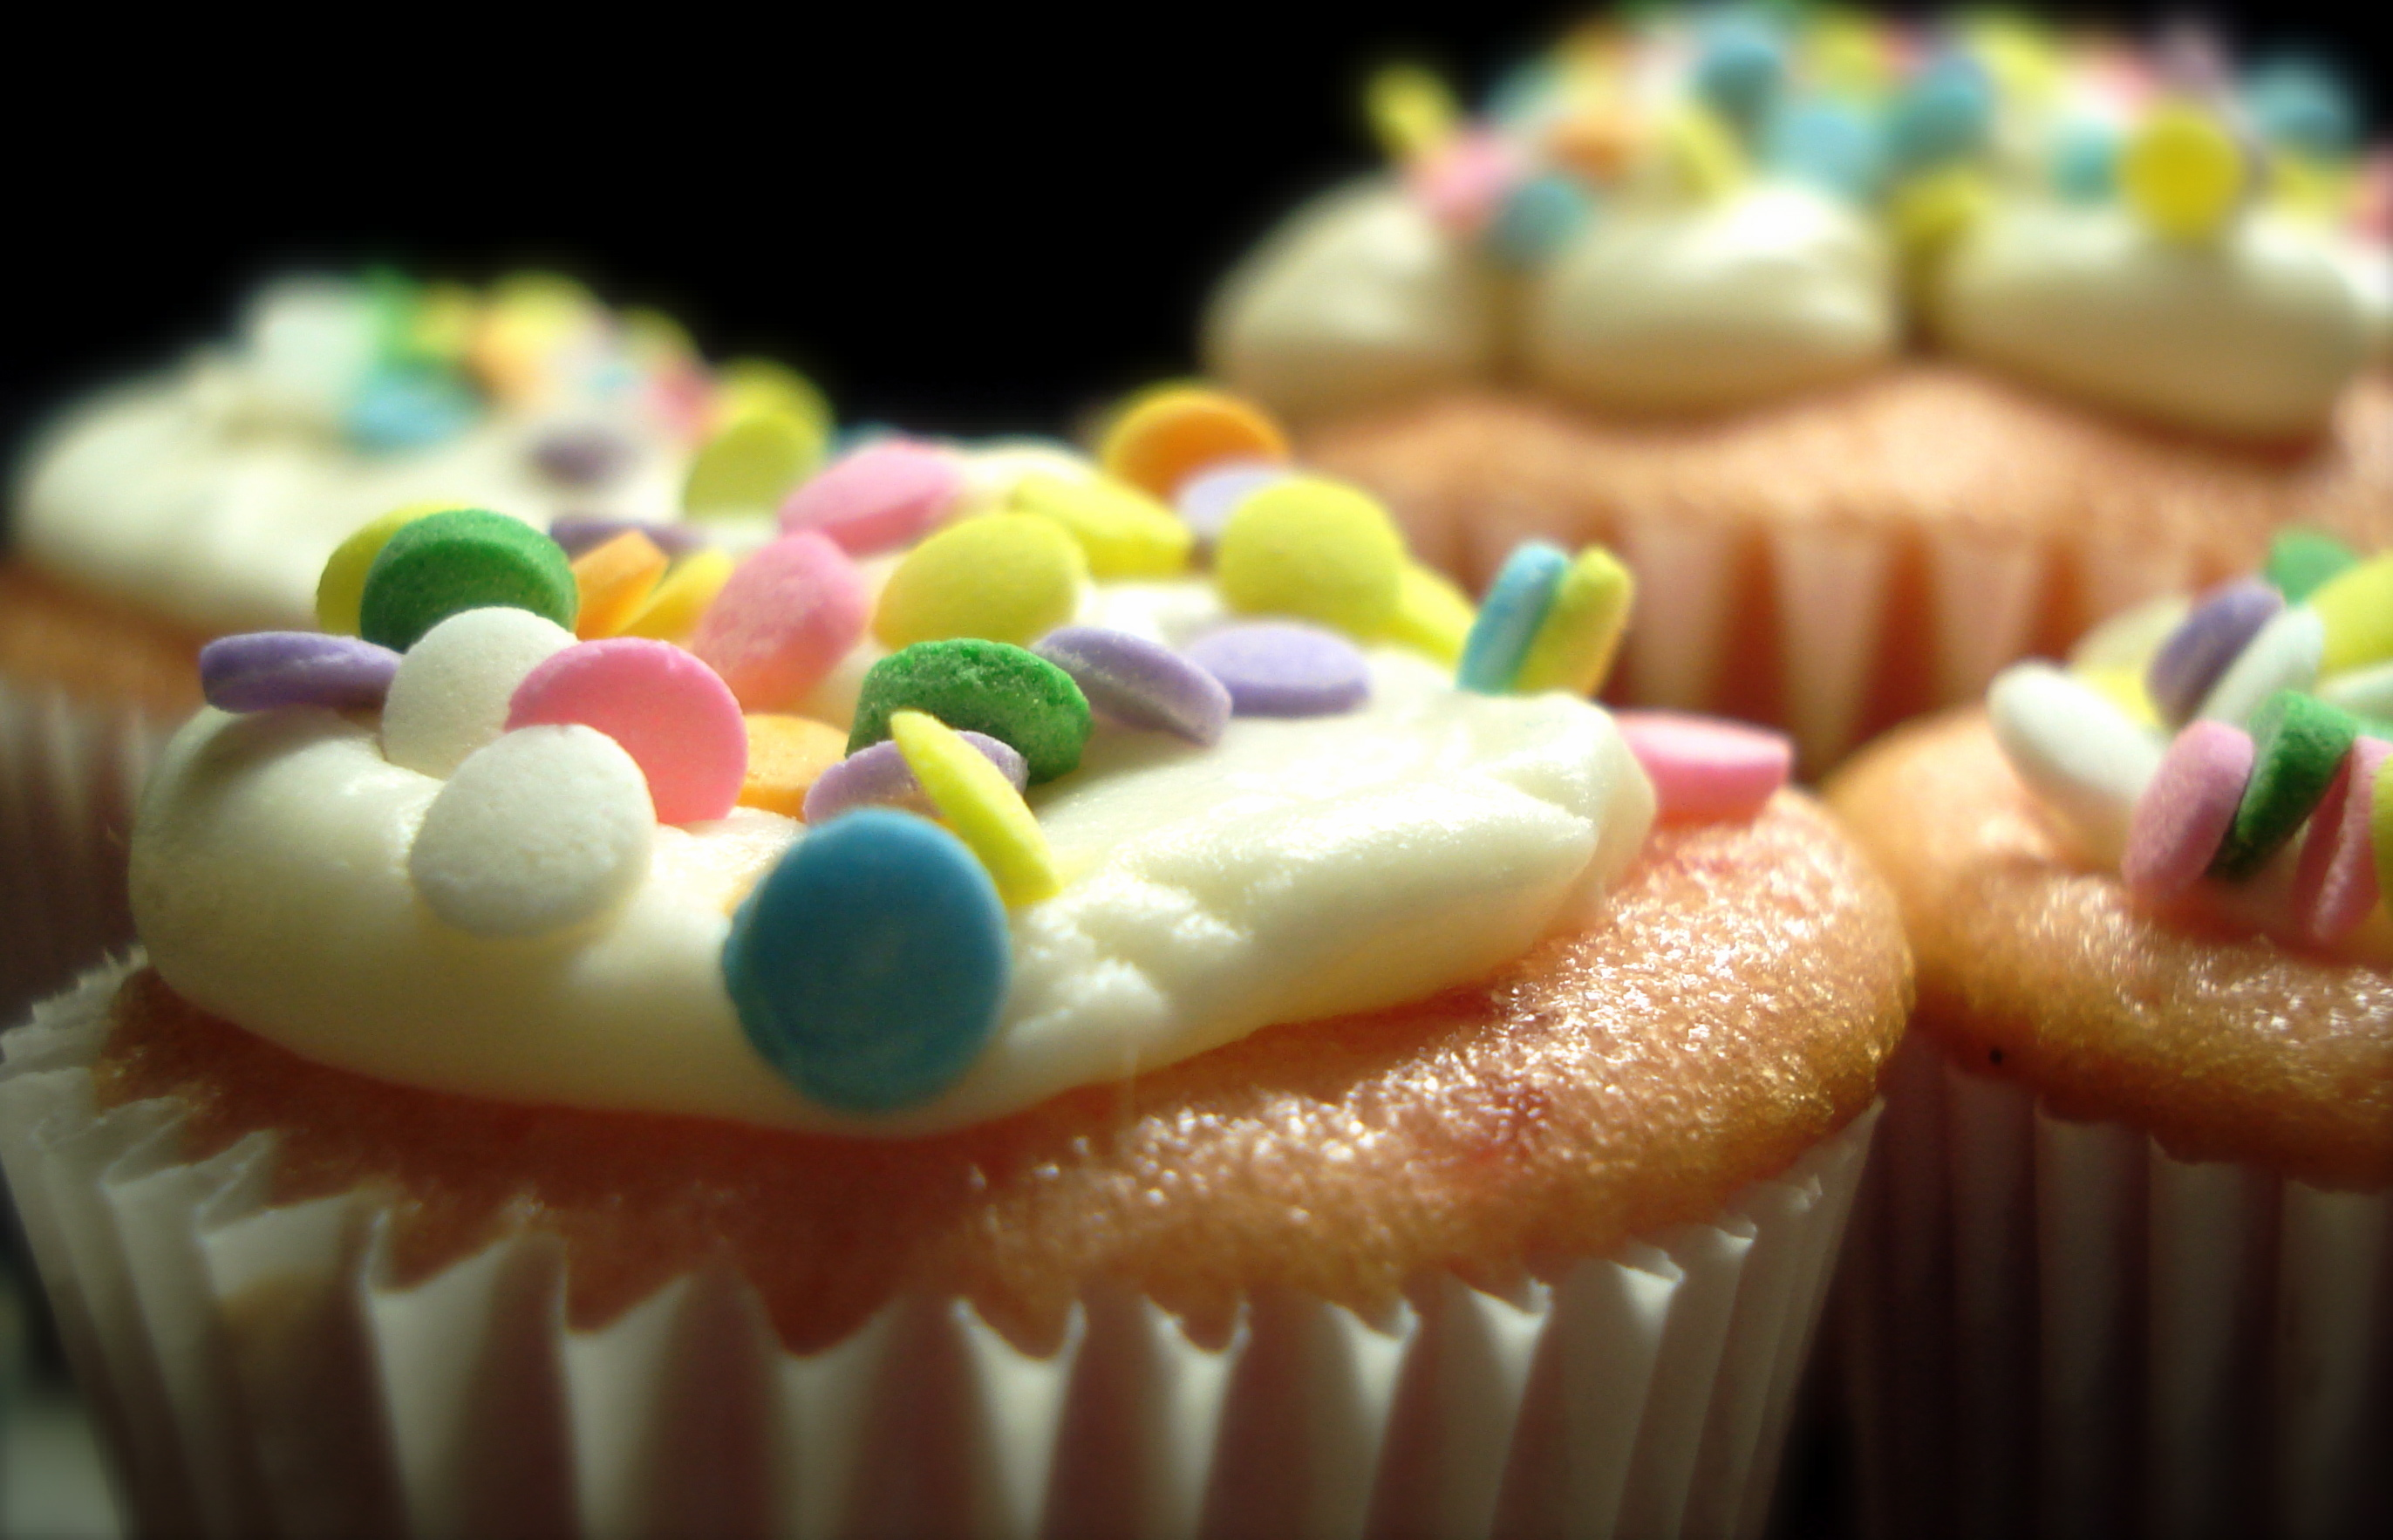 cupcakes muffins icing HD Wallpaper